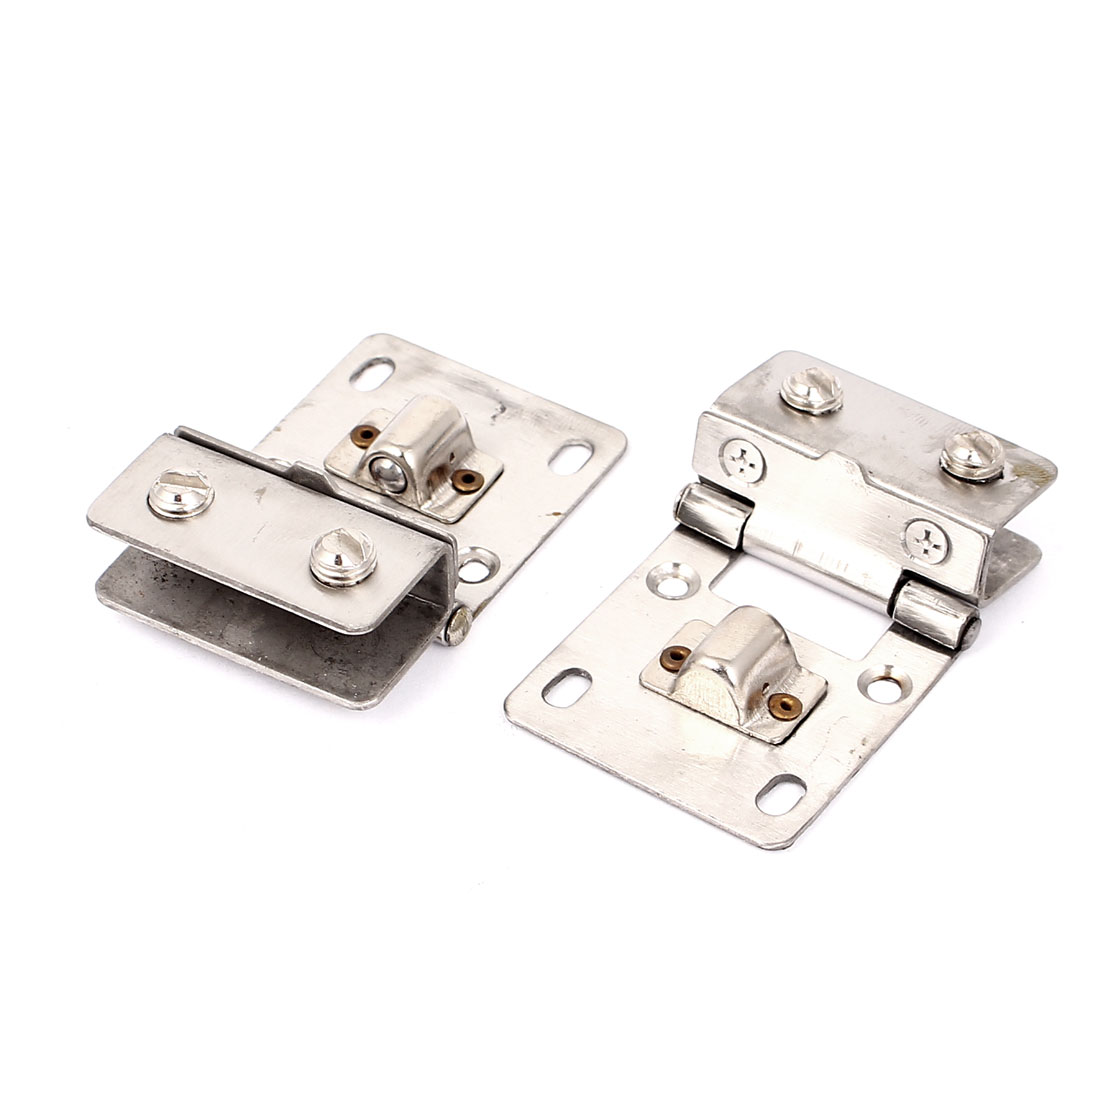 Stainless Steel 8mm Thickness Glass Shelf Clips Clamps Support Bracket 2pcs